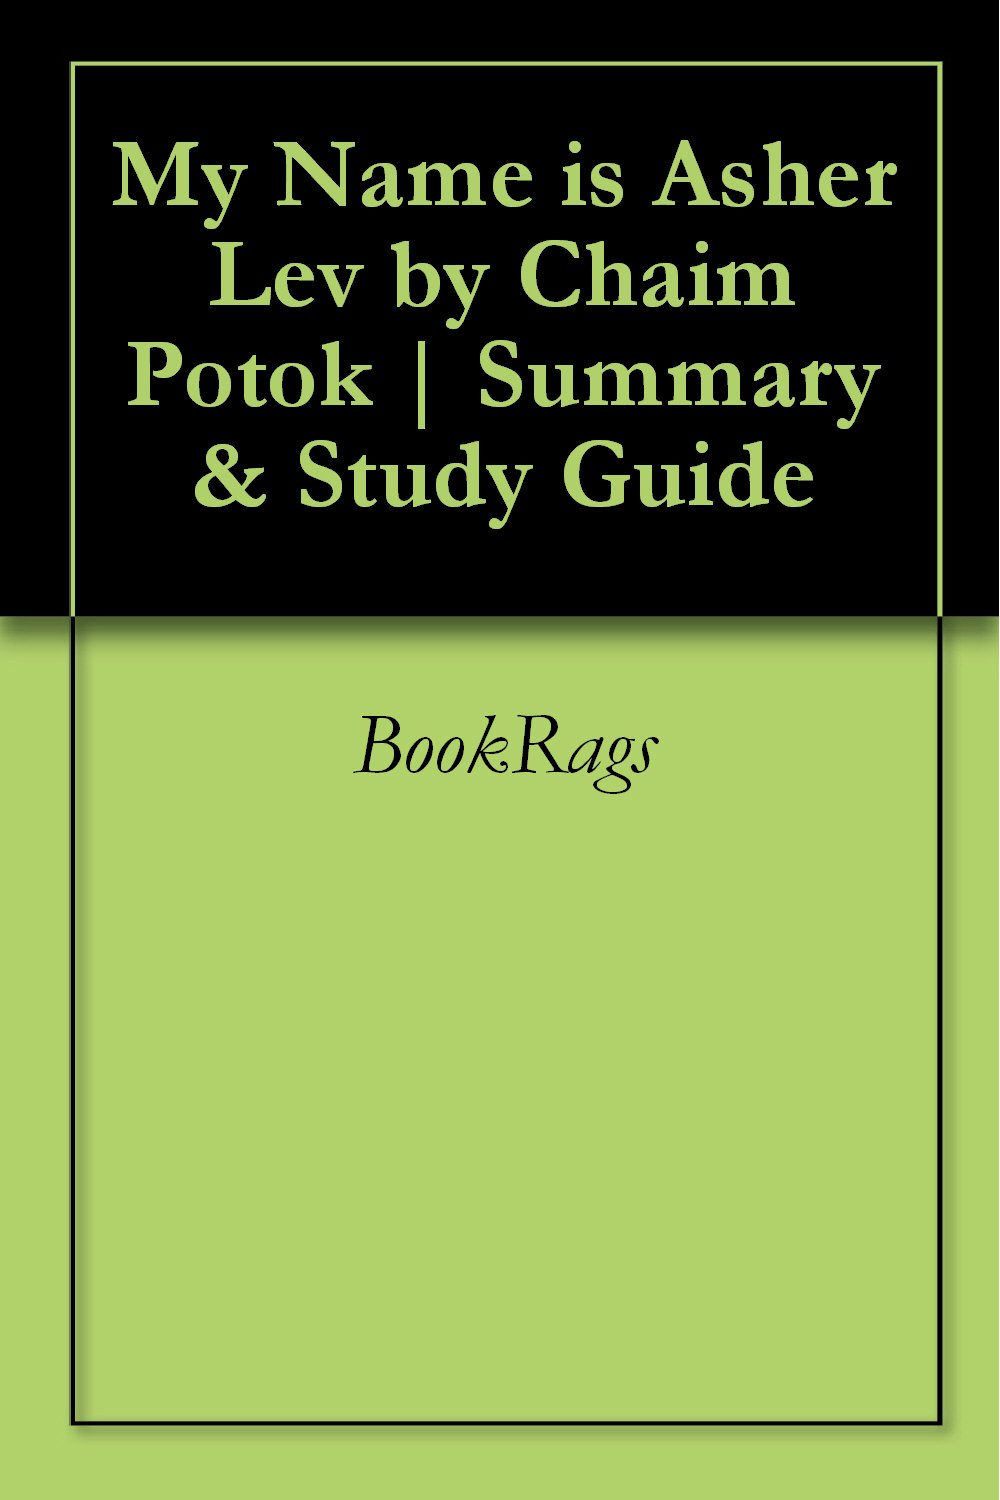 My Name is Asher Lev by Chaim Potok | Summary & Study Guide